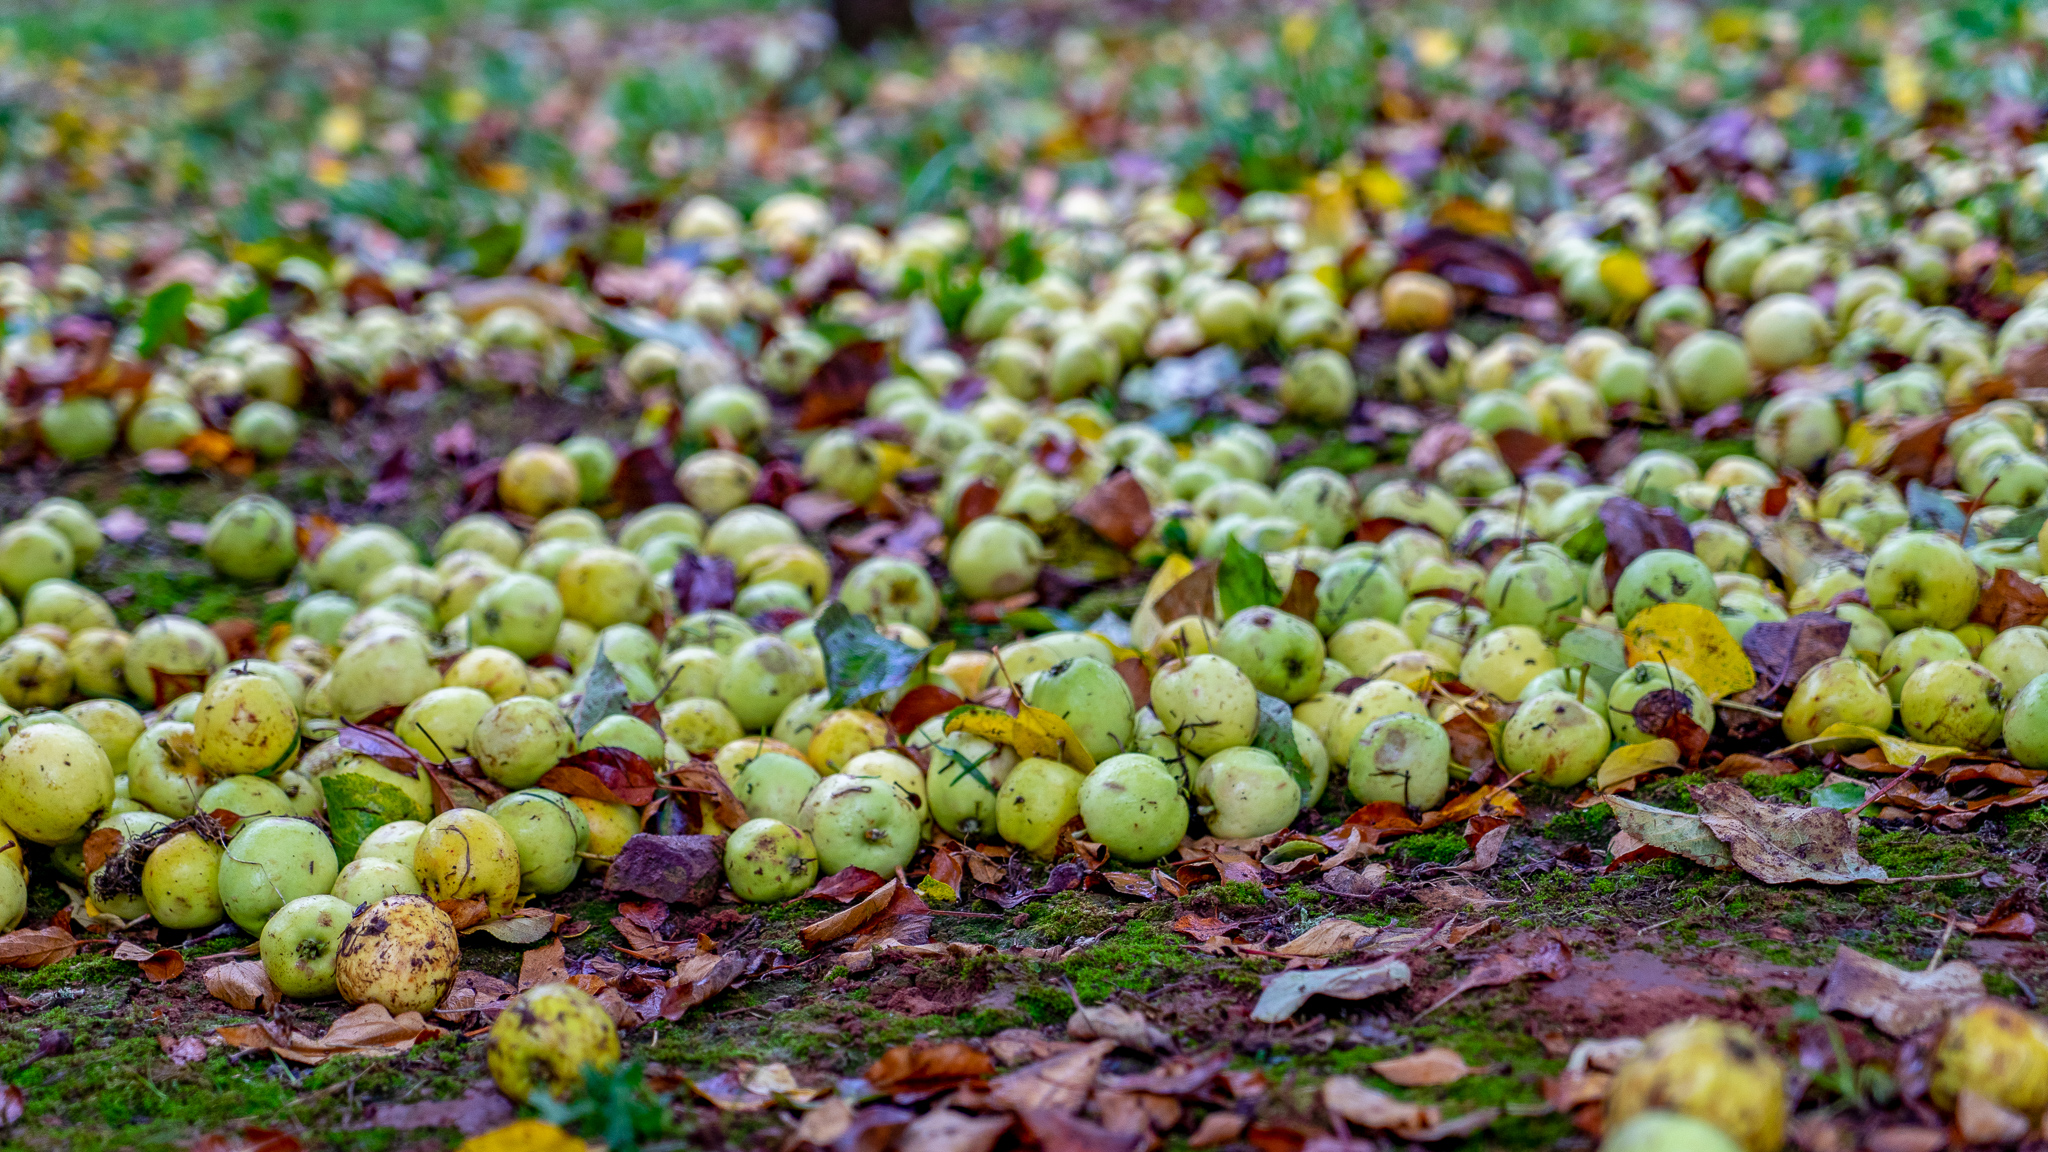 Green apples on the ground of an orchard